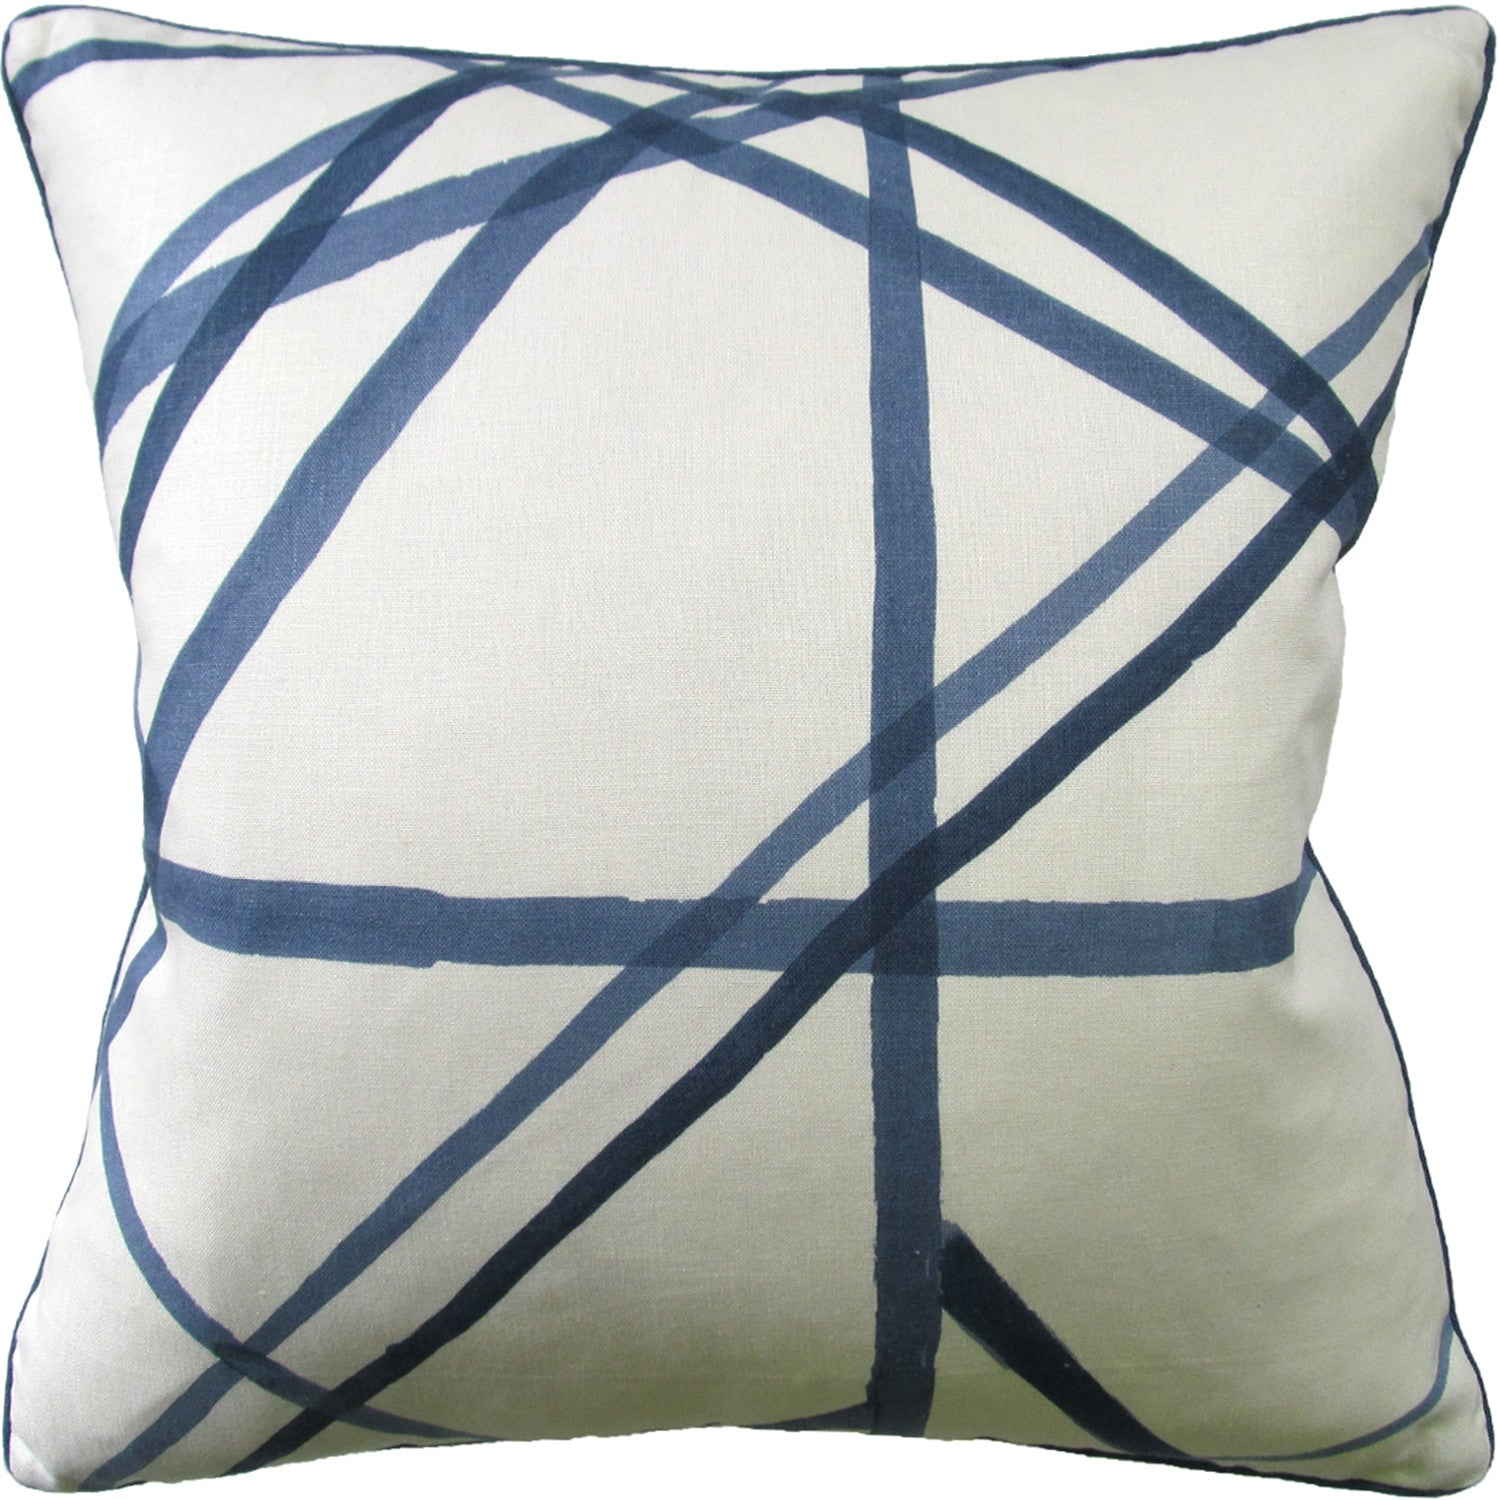 Ryan Studio Channels Pillow in Periwinkle